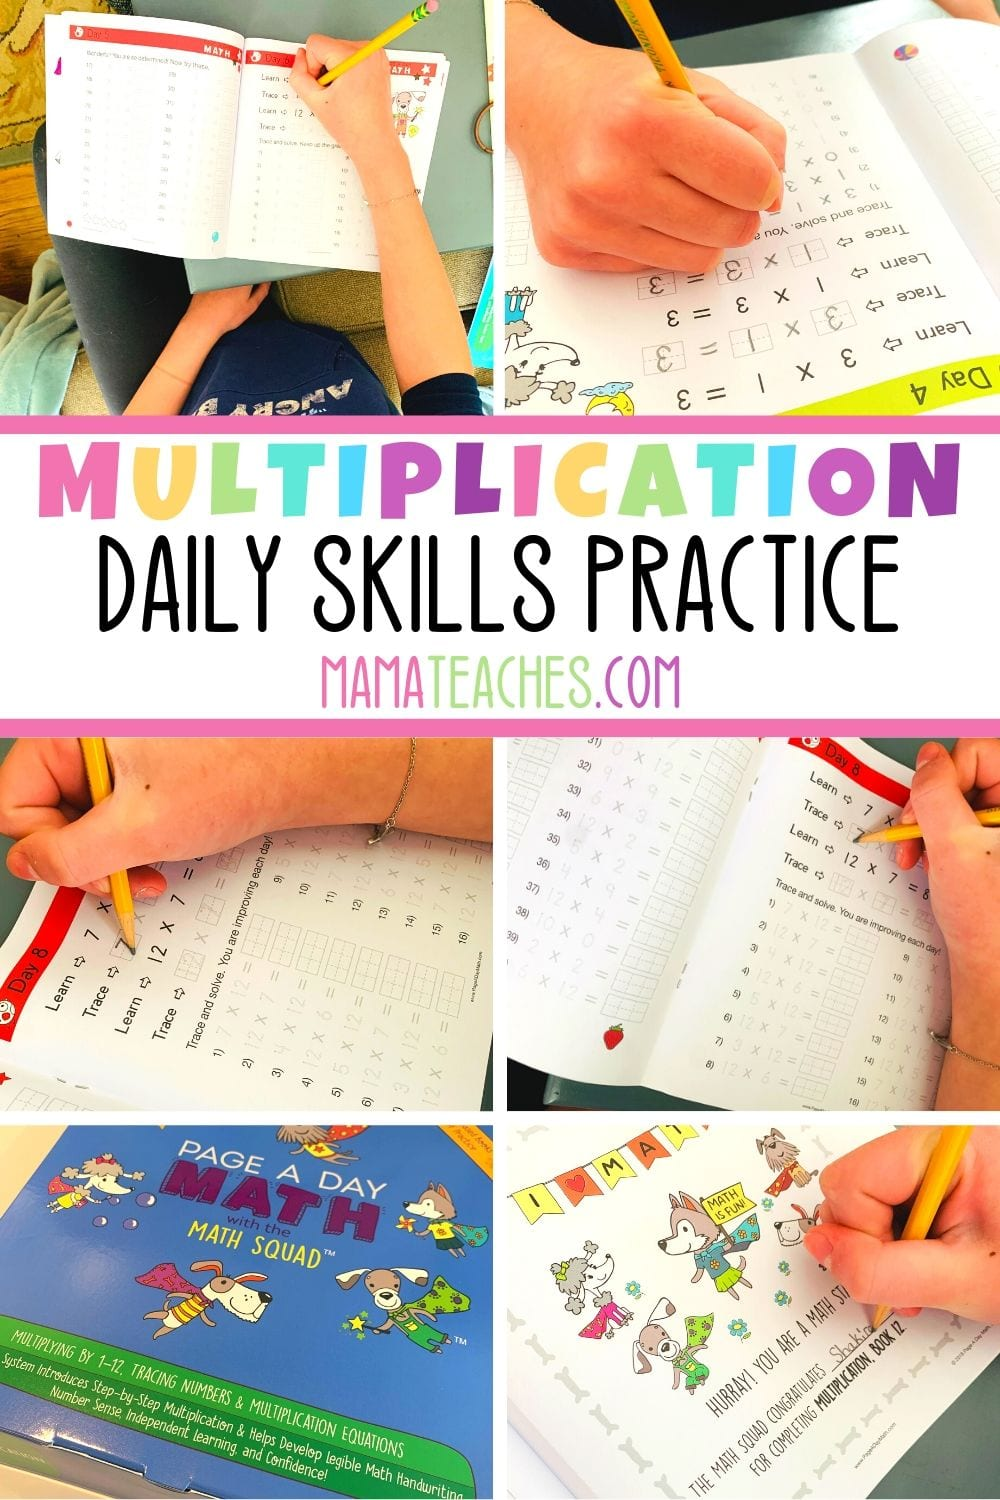 Multiplication Daily Skills Practice